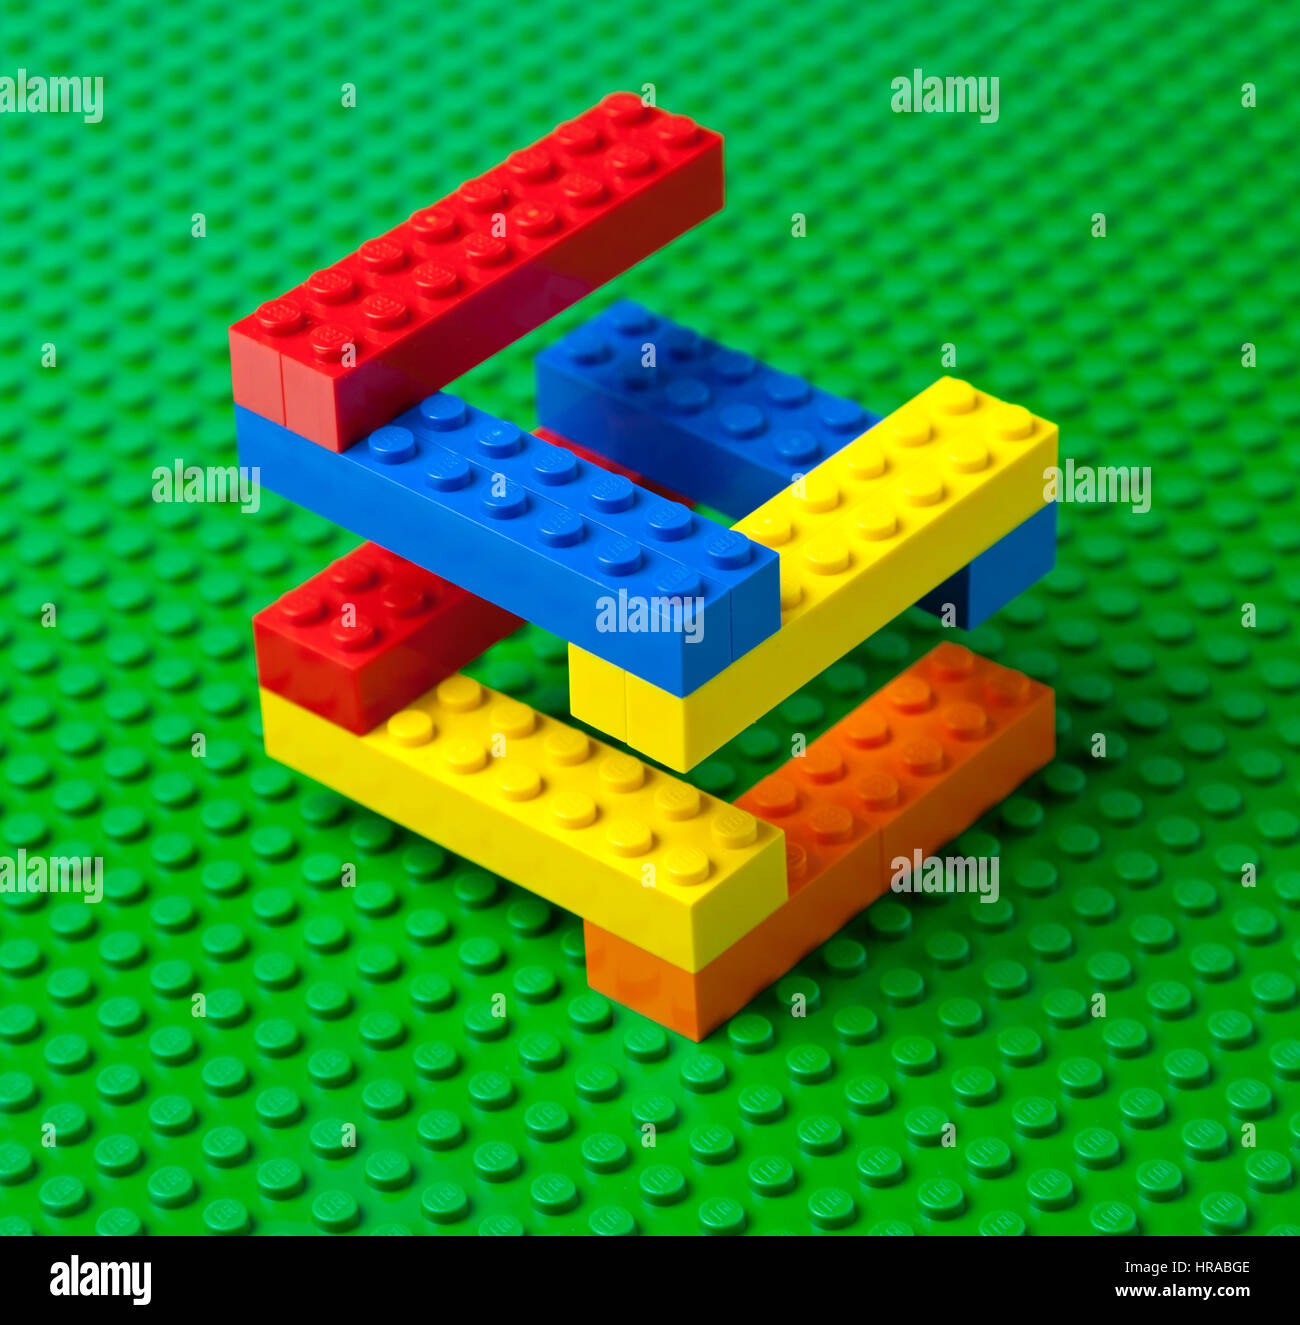 Colourful Lego brick construction or staircase on a green Lego base plate. & Colourful Lego brick construction or staircase on a green Lego base ...